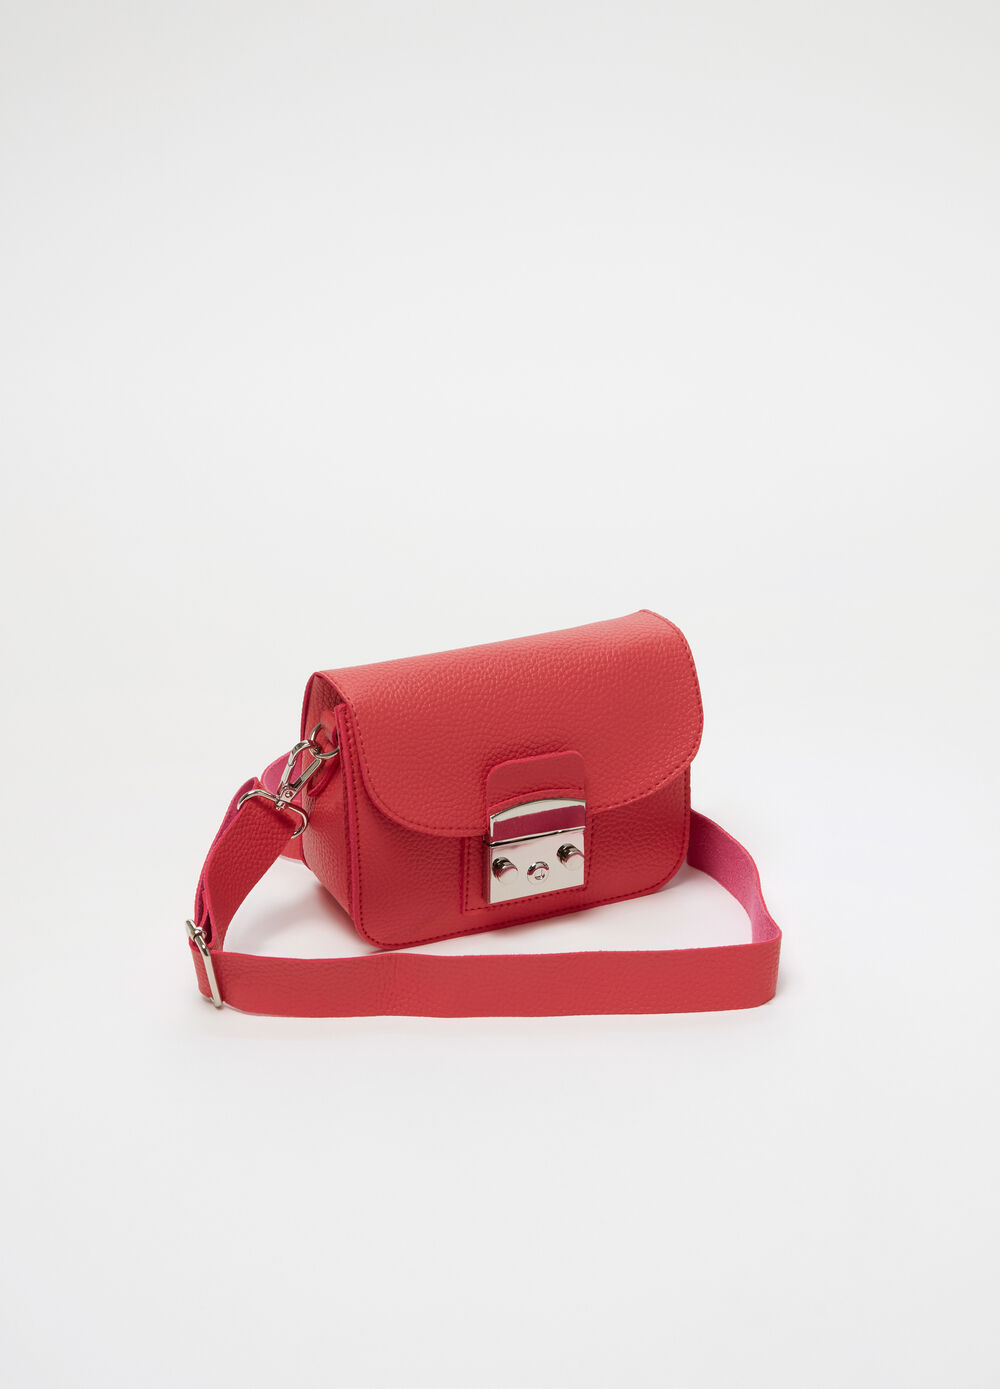 Mini bag with shoulder strap